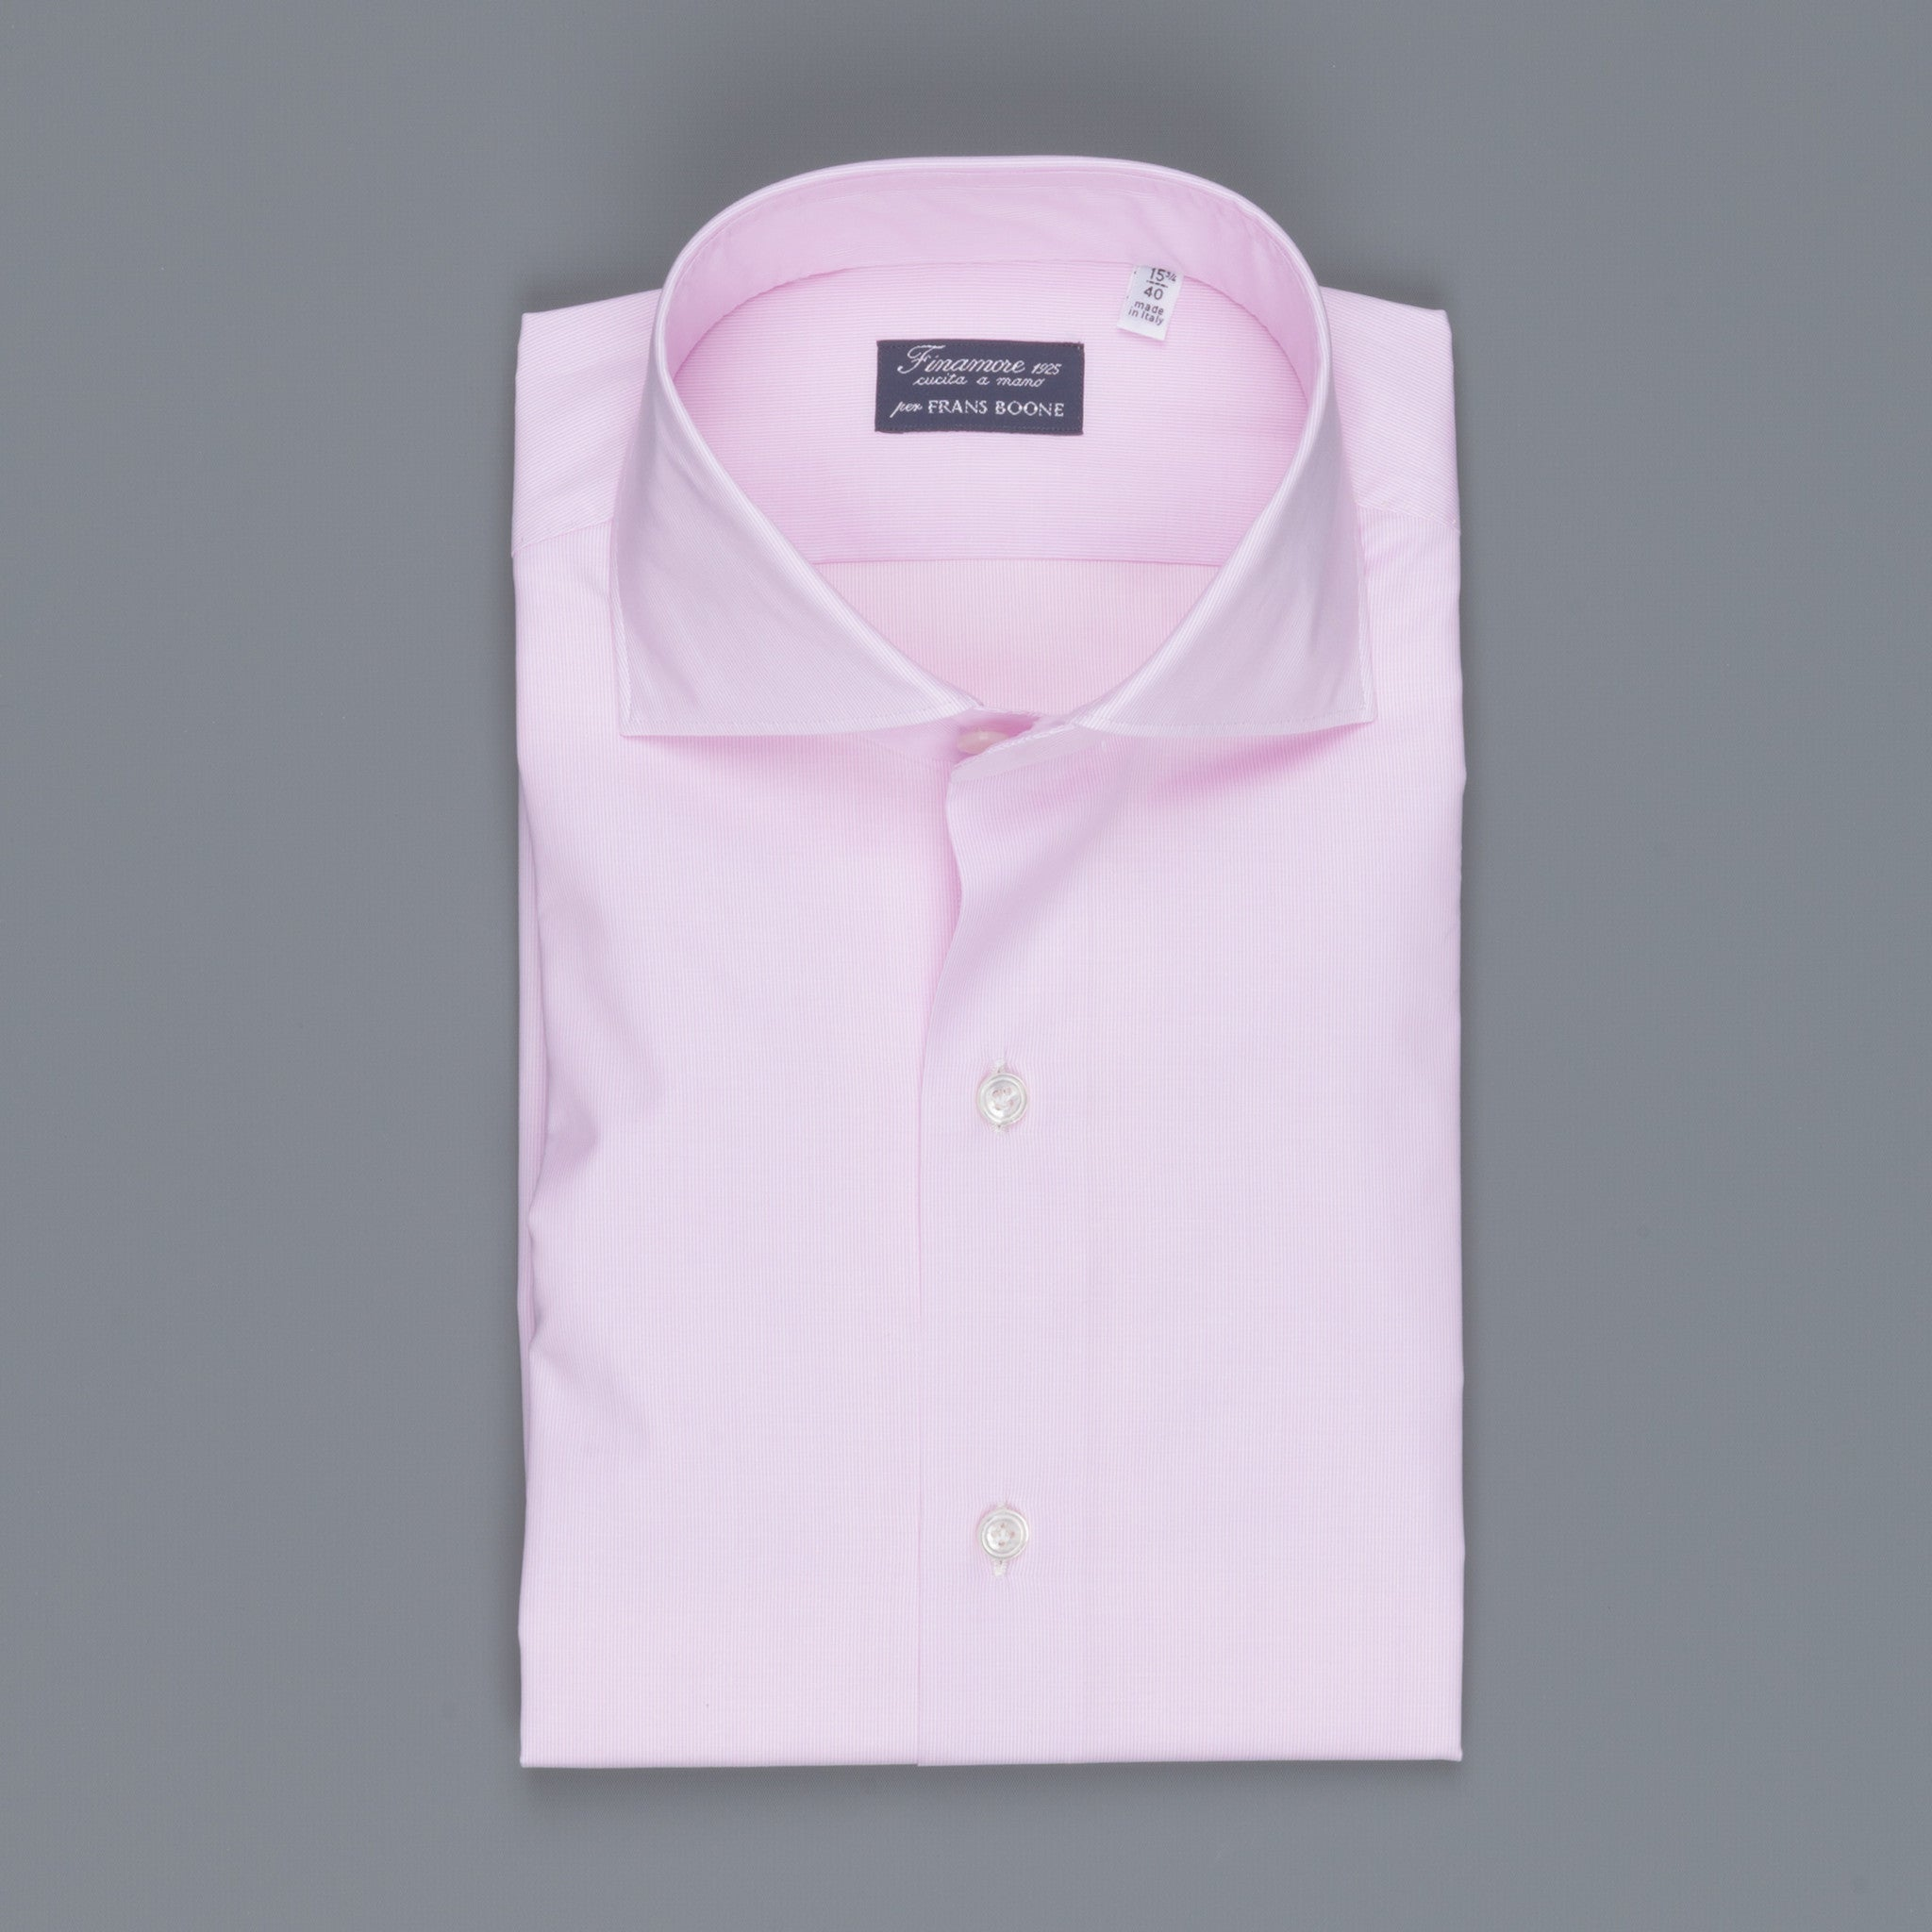 Finamore Milano Shirt Pink Hairline Collo Eduardo Frans